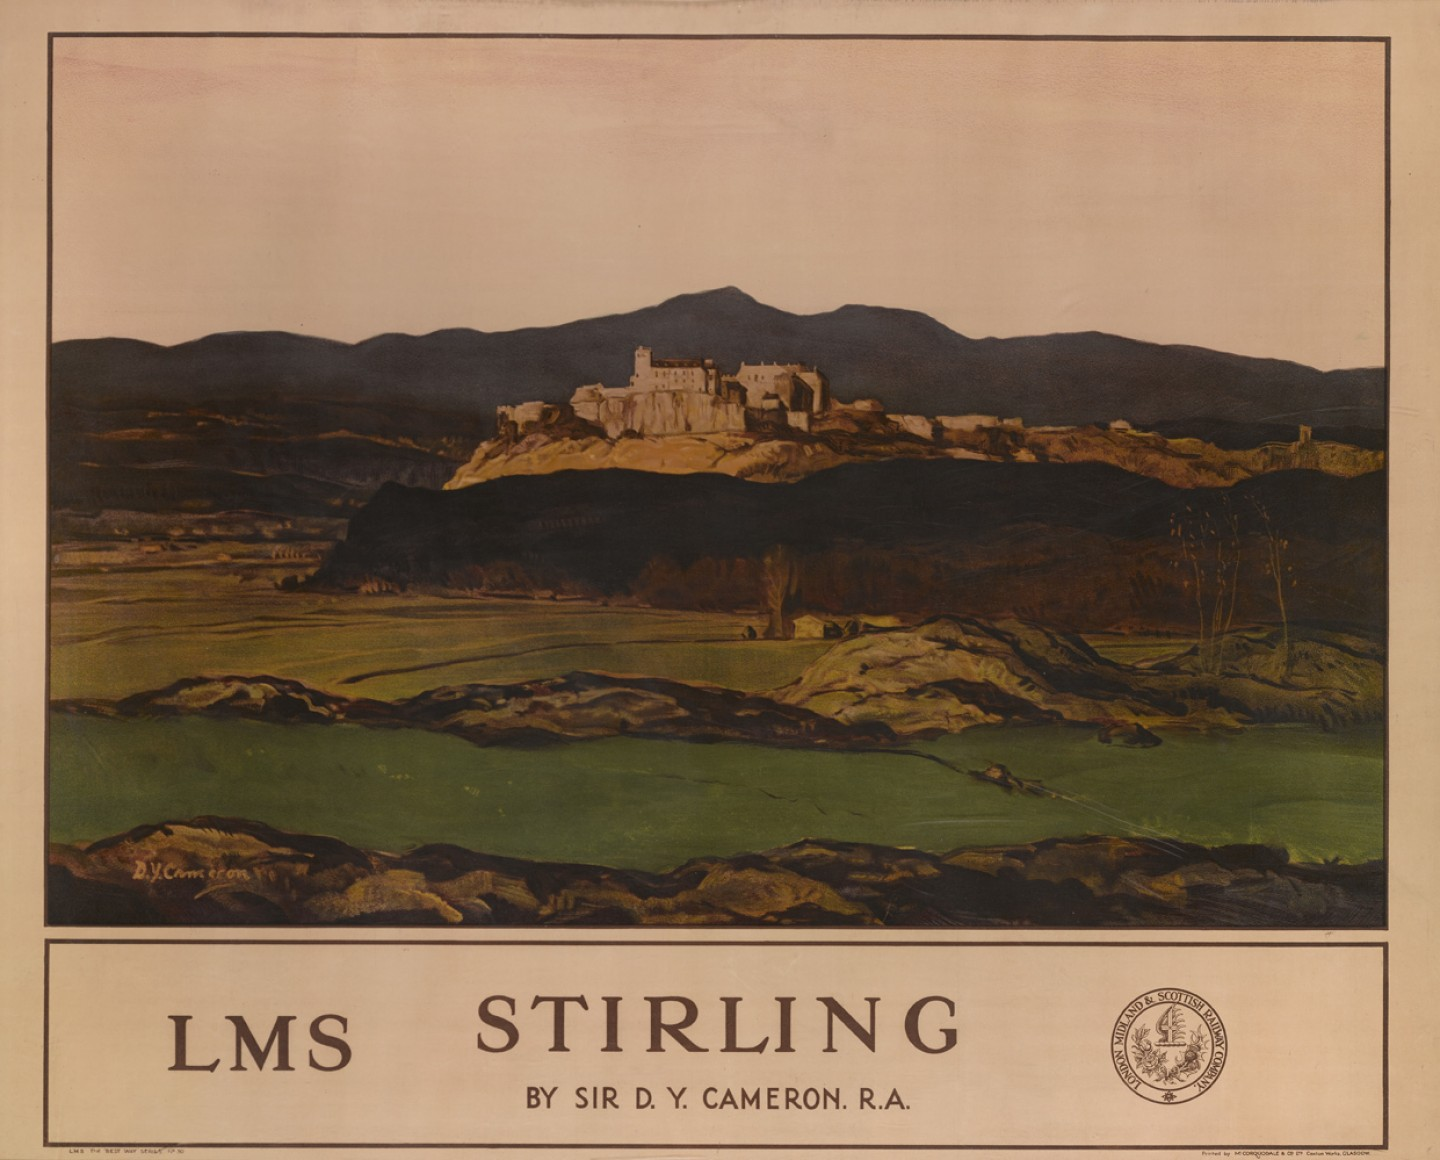 Railway Poster, LMS Stirling